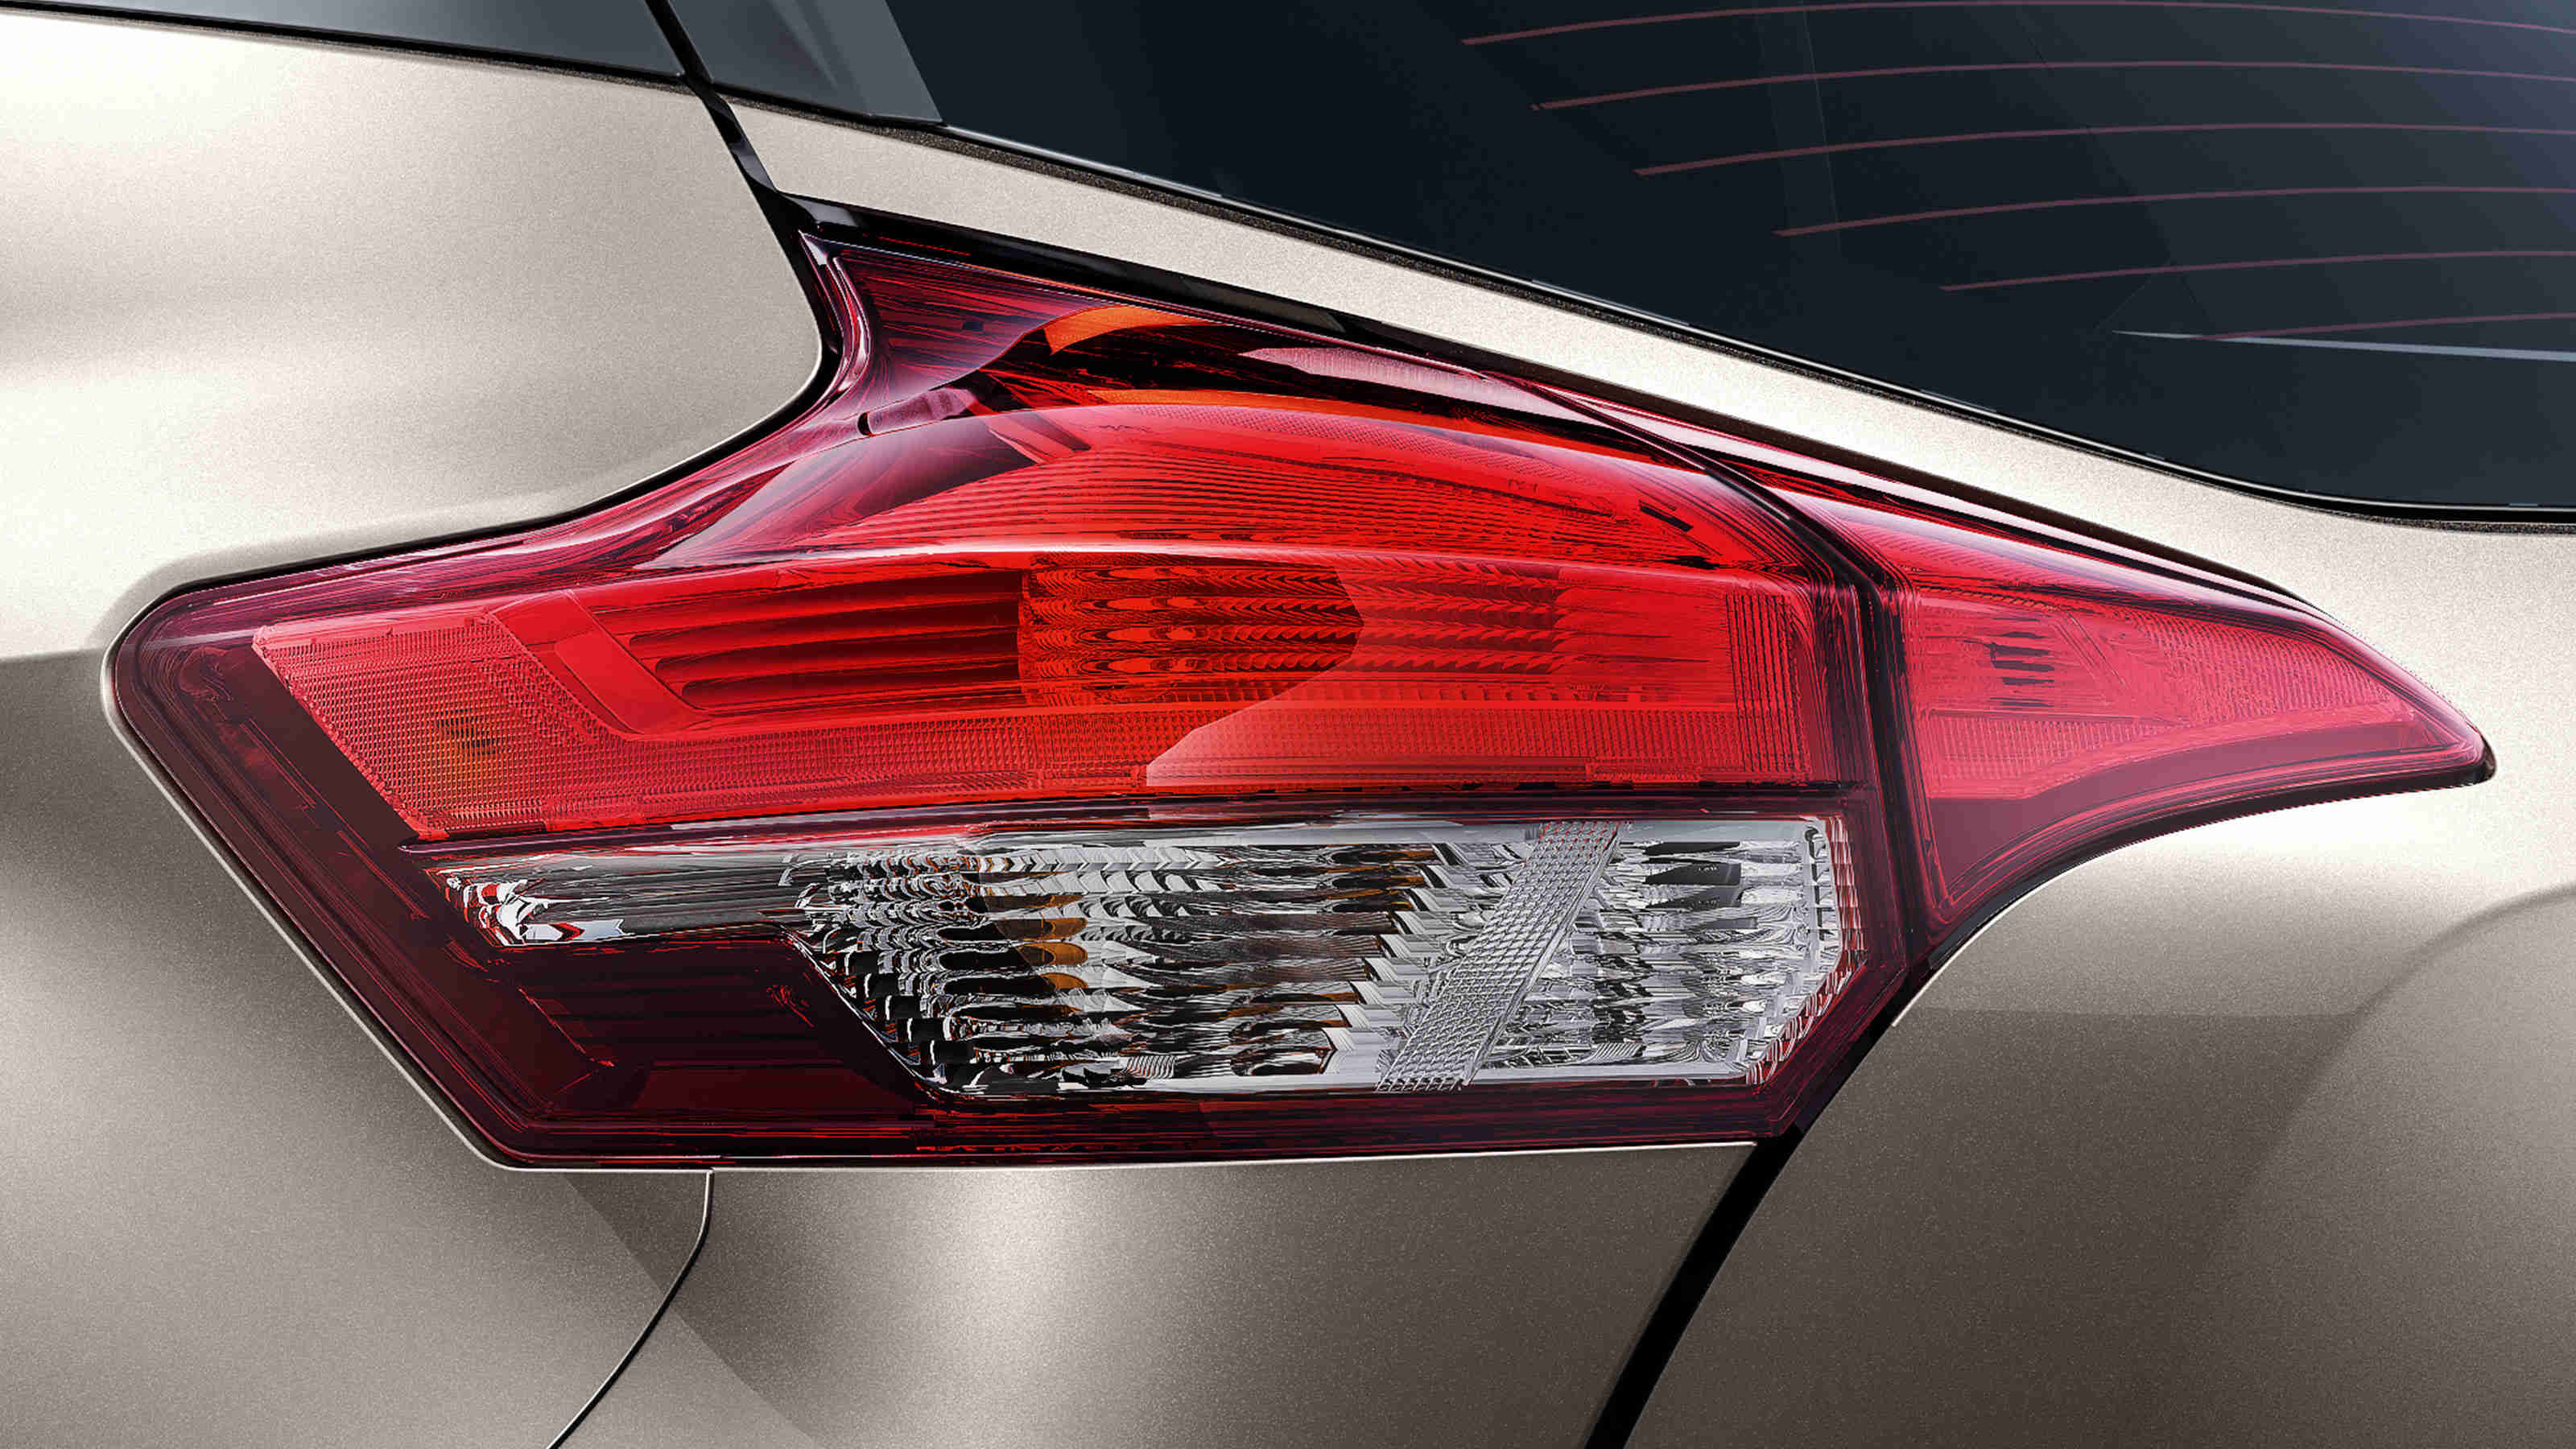 Boomerang Tail Lamps